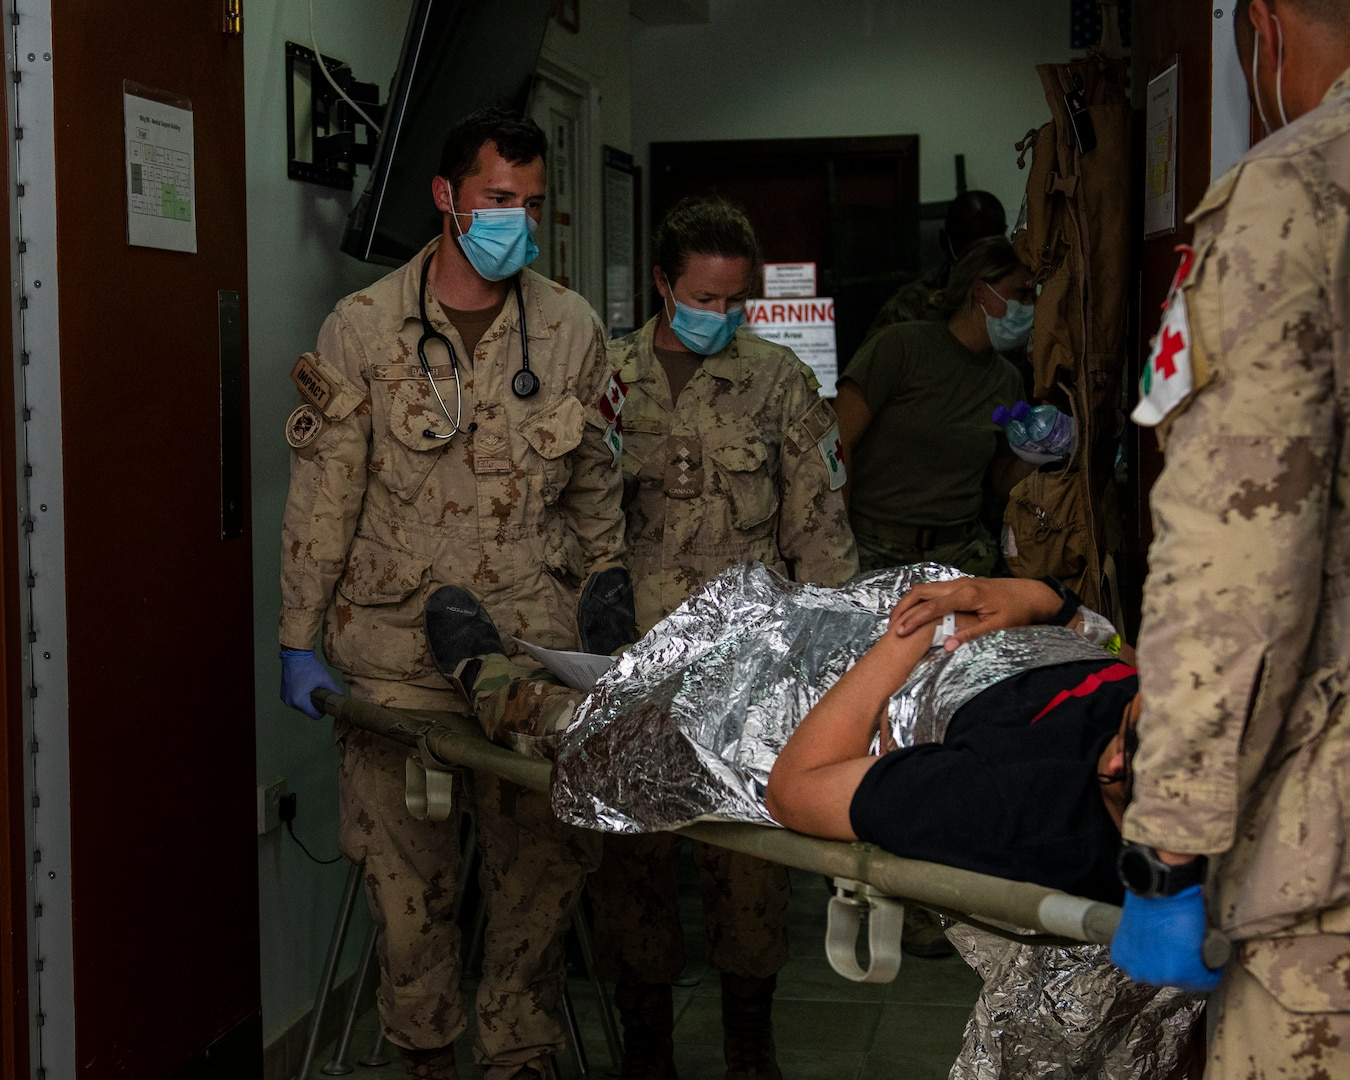 Medical personnel carry a stretcher into a room.